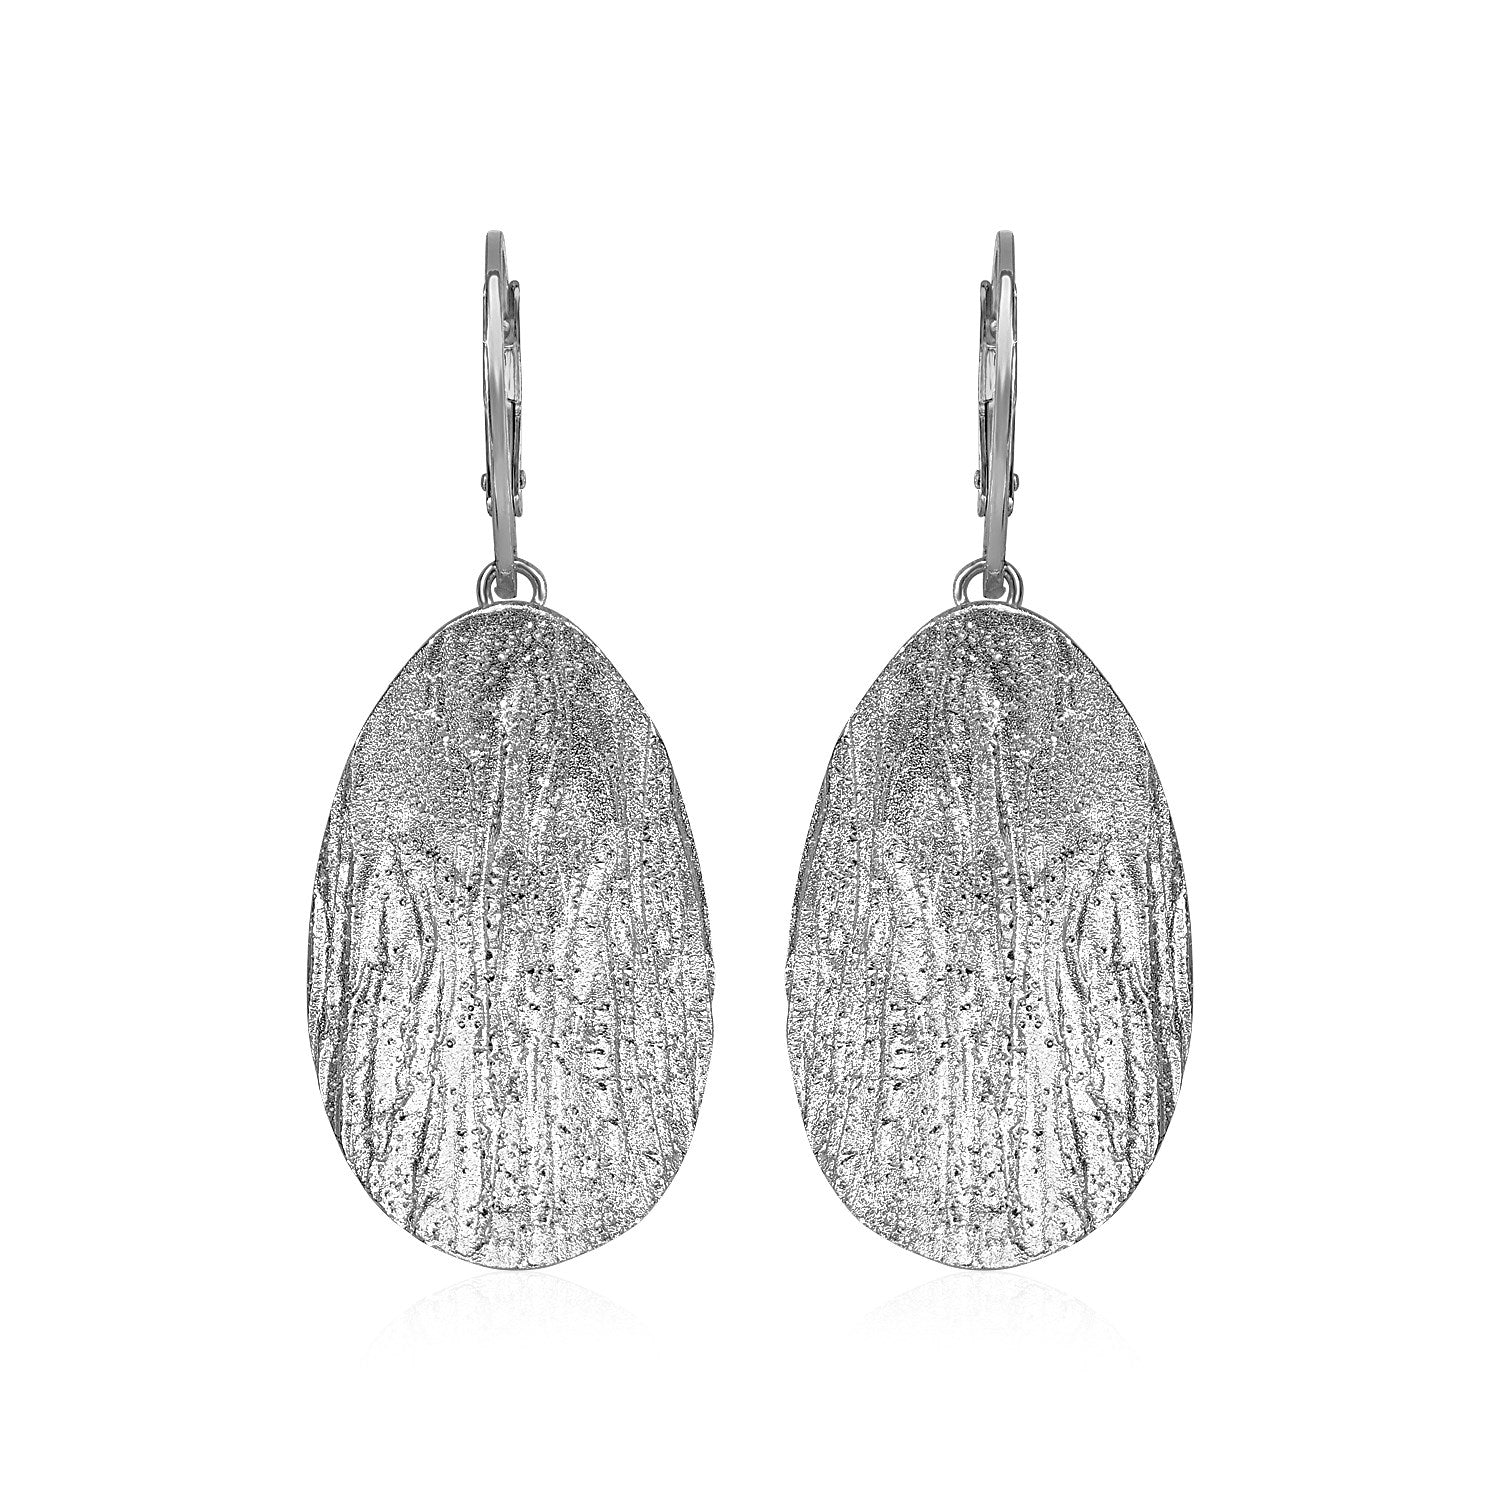 Original New York Style  Textured Oval Earrings with White Finish in Sterling Silver